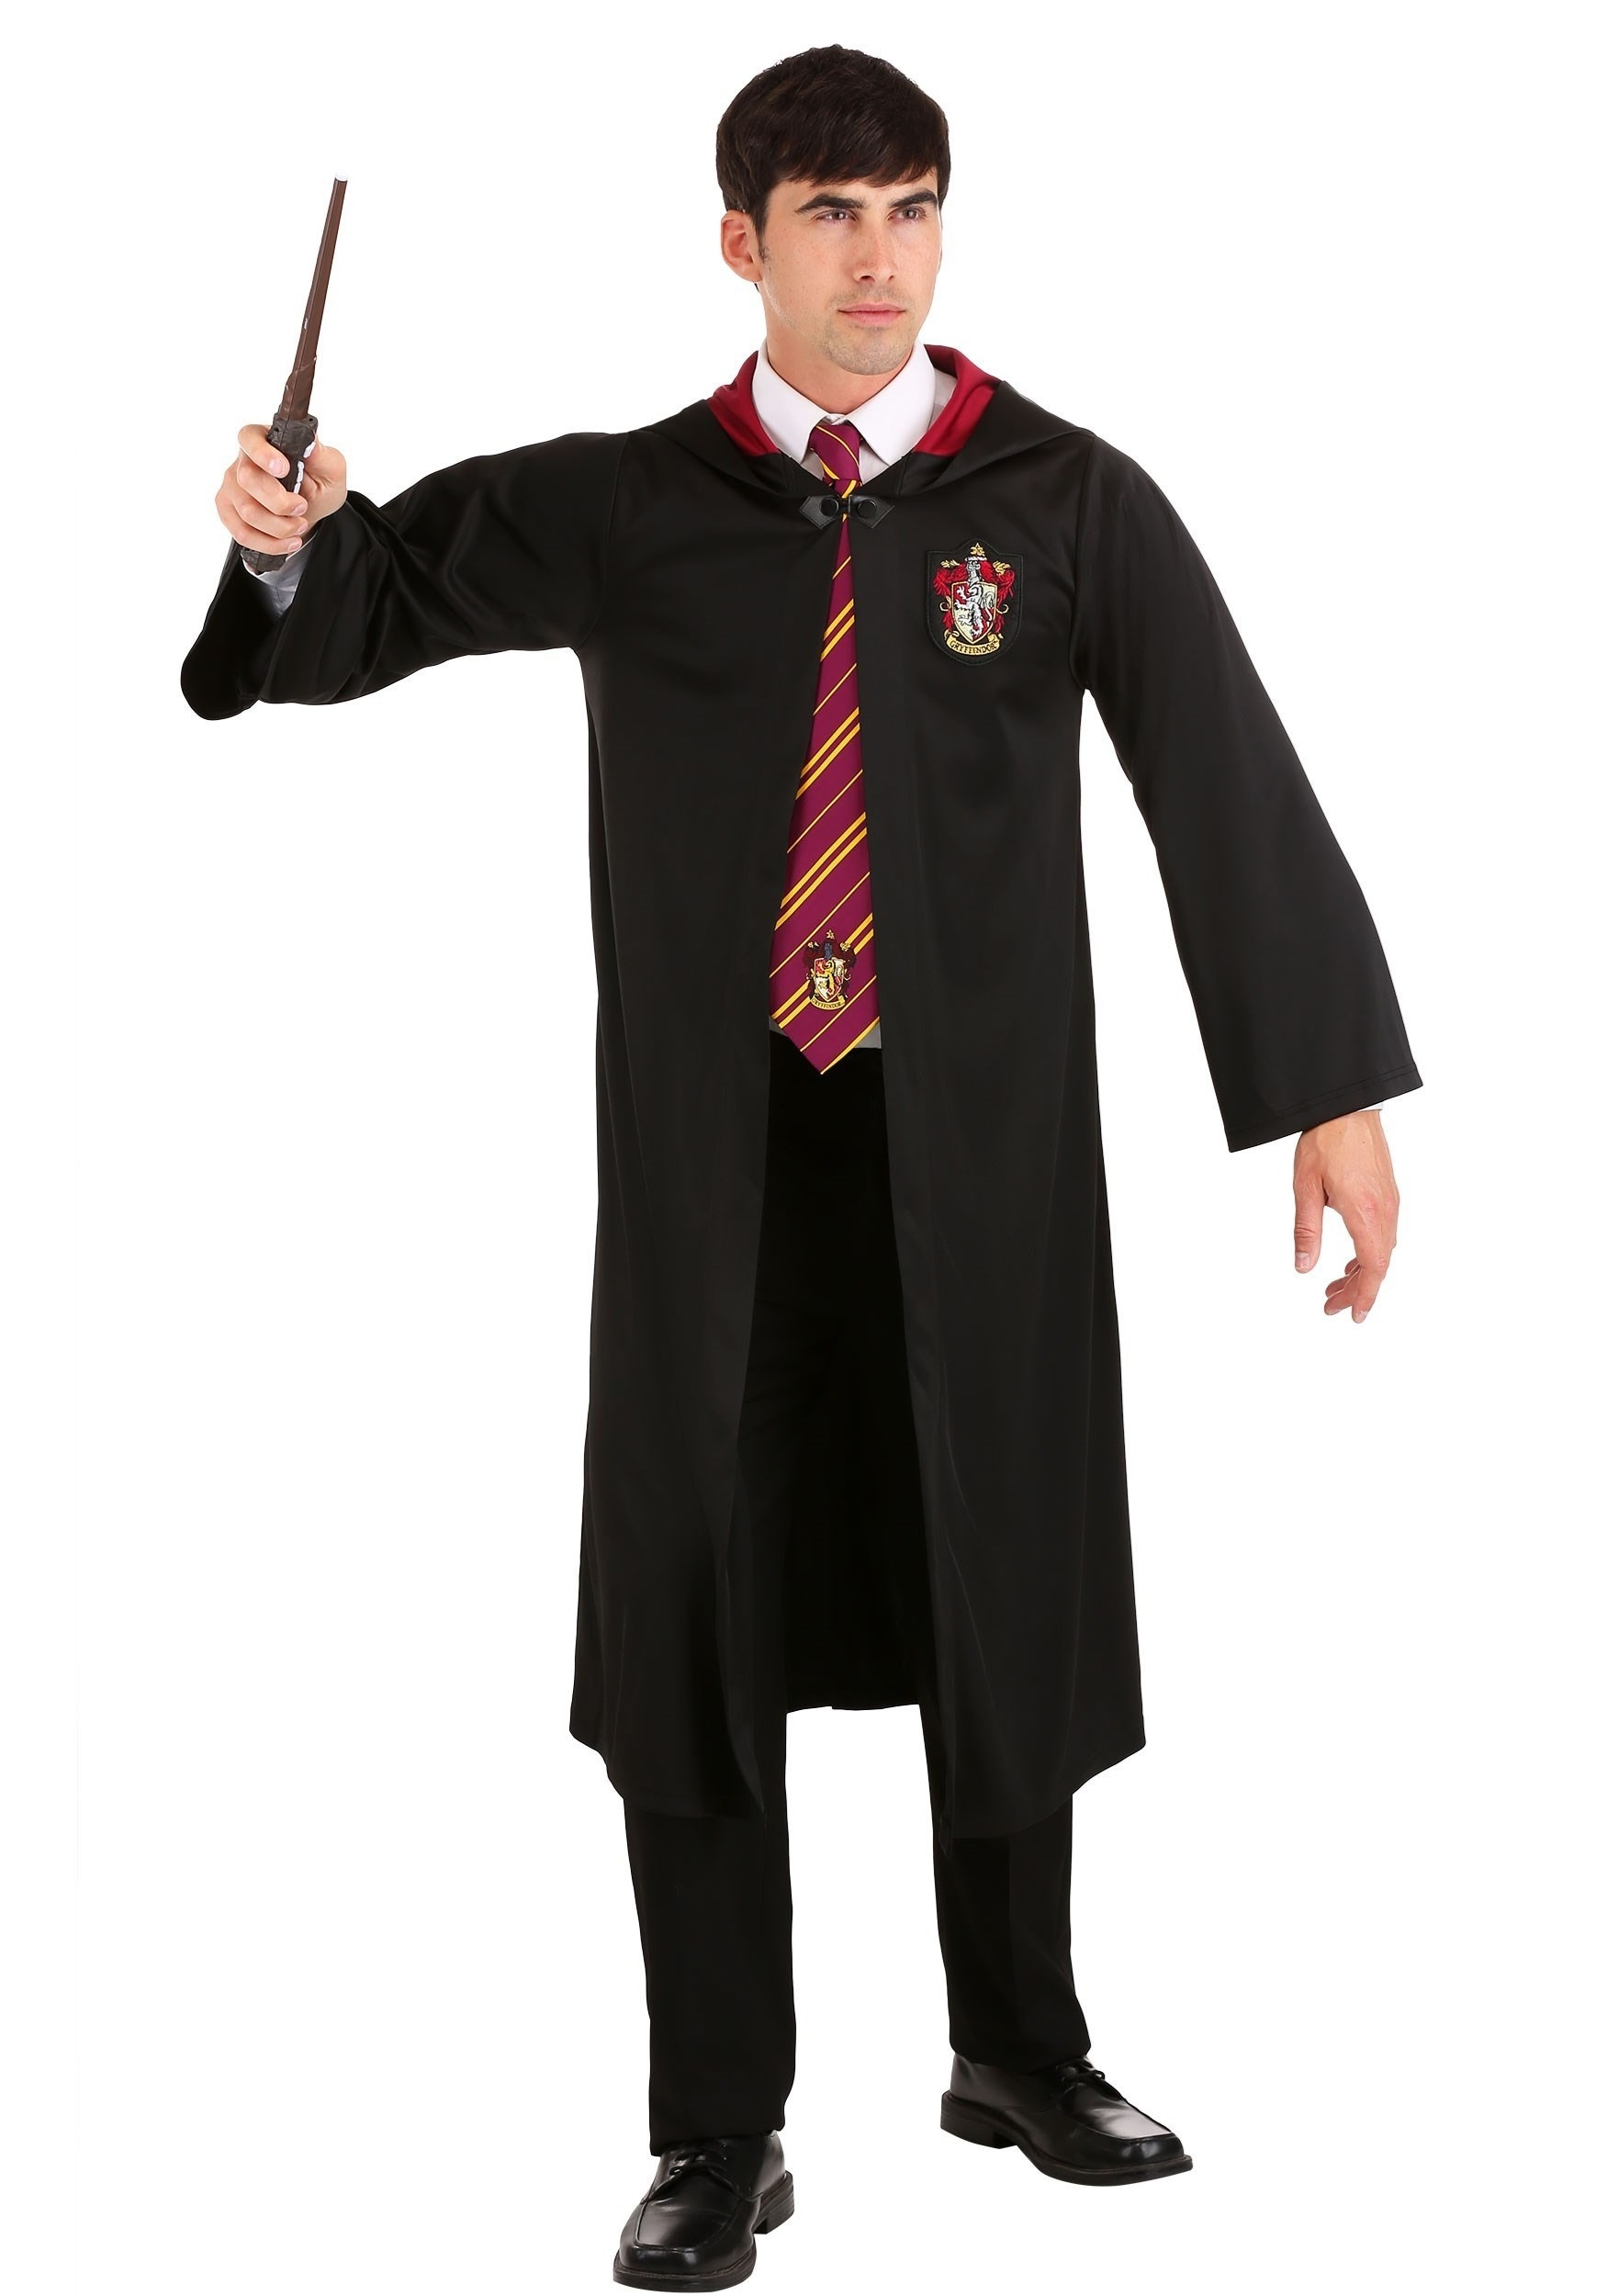 Harry Potter Gryffindor Robe Costume for Adults